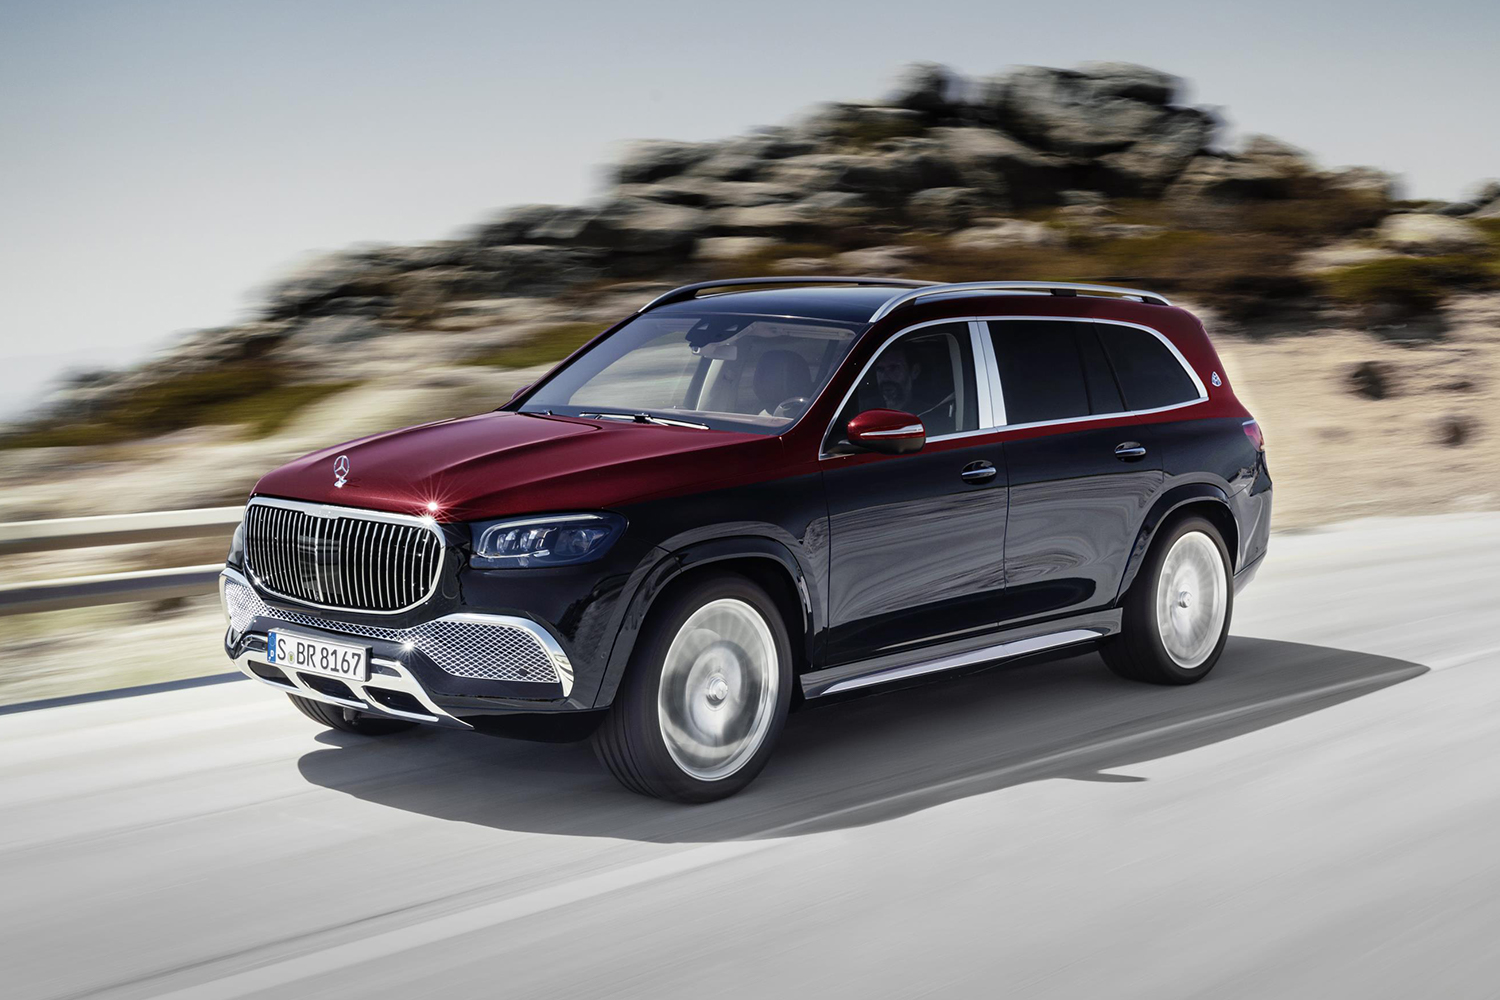 What S The Most Expensive American Car This Mercedes Maybach Suv Insidehook